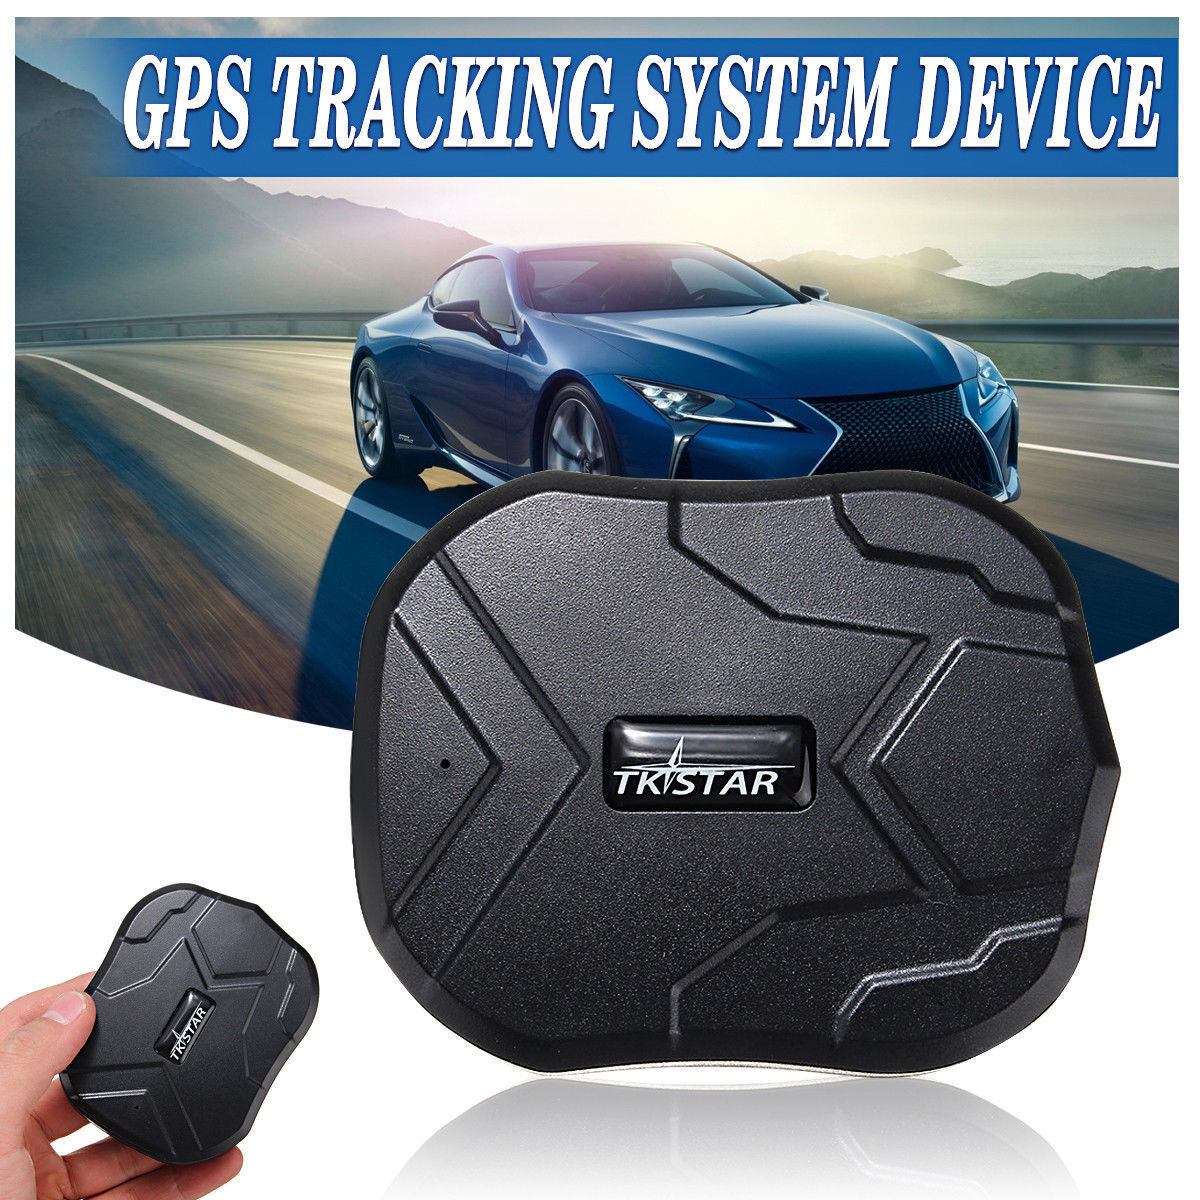 TKSTAR Tk905 GPS Car Tracking Device Powerful Magnet Vehicle